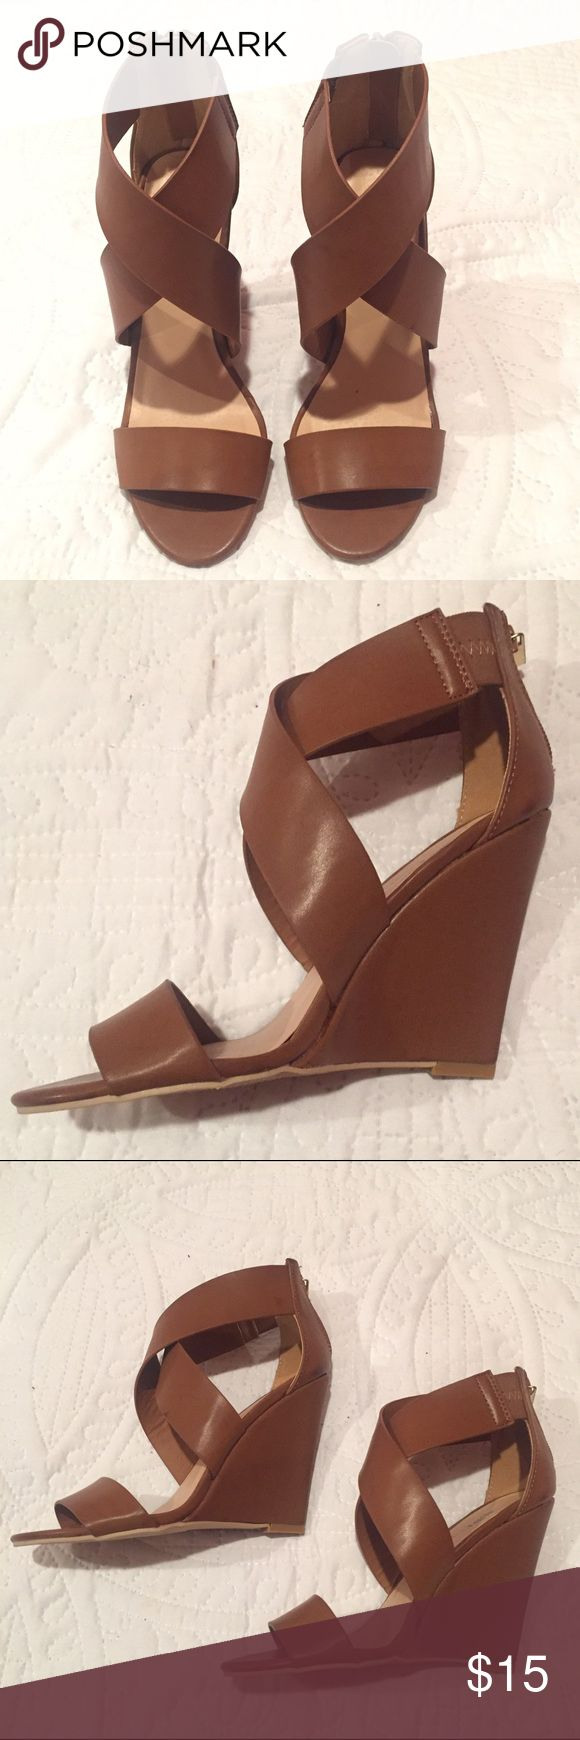 "Just Fab Tan Wedges Tan wedges buy Just Fab. Super cute wedges that will go great with a variety of outfits. These wedges have a 4"" heel and are a size 6. Very good condition, only worn once. JustFab Shoes"